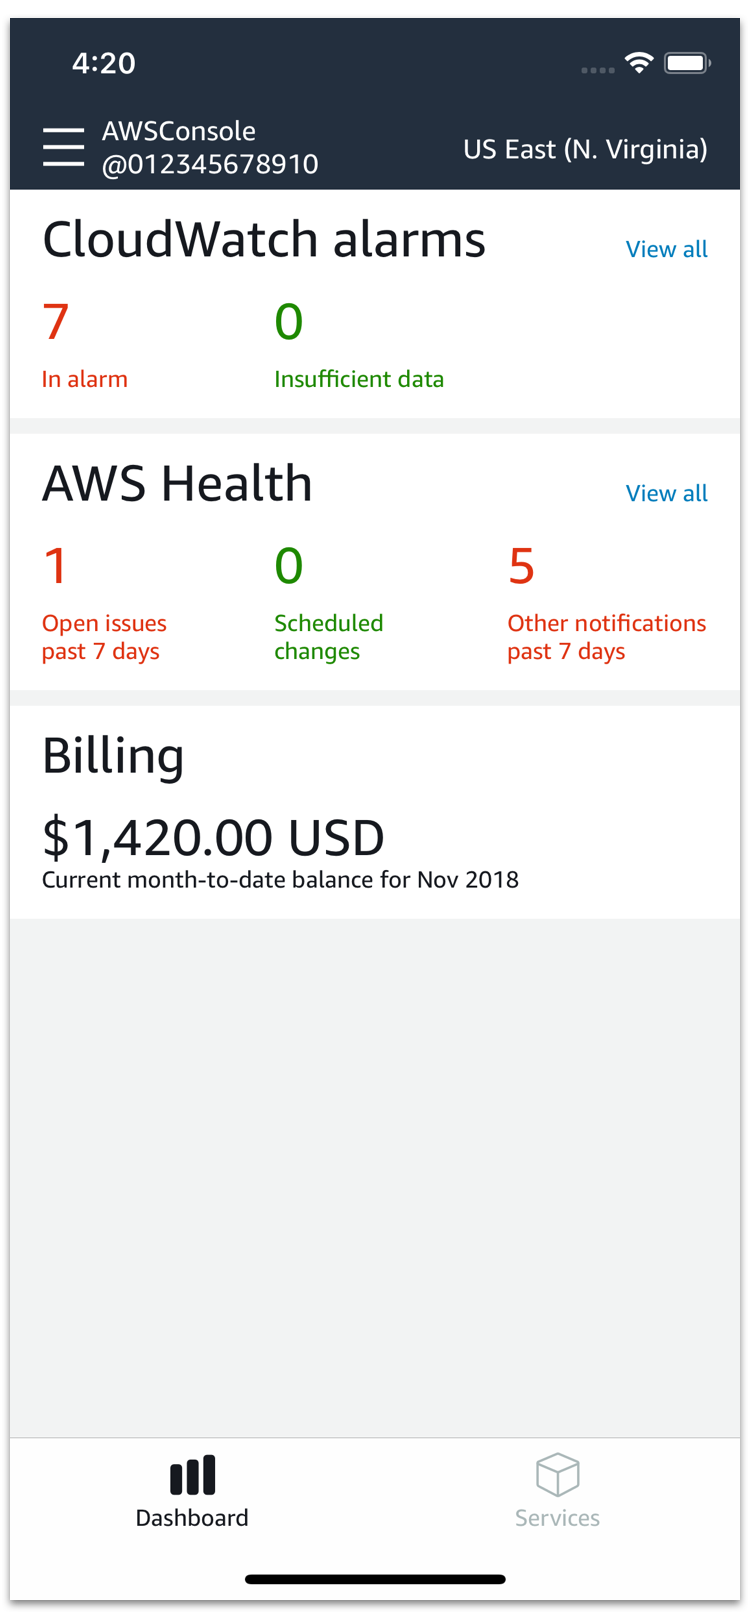 AWS Console Mobile Application